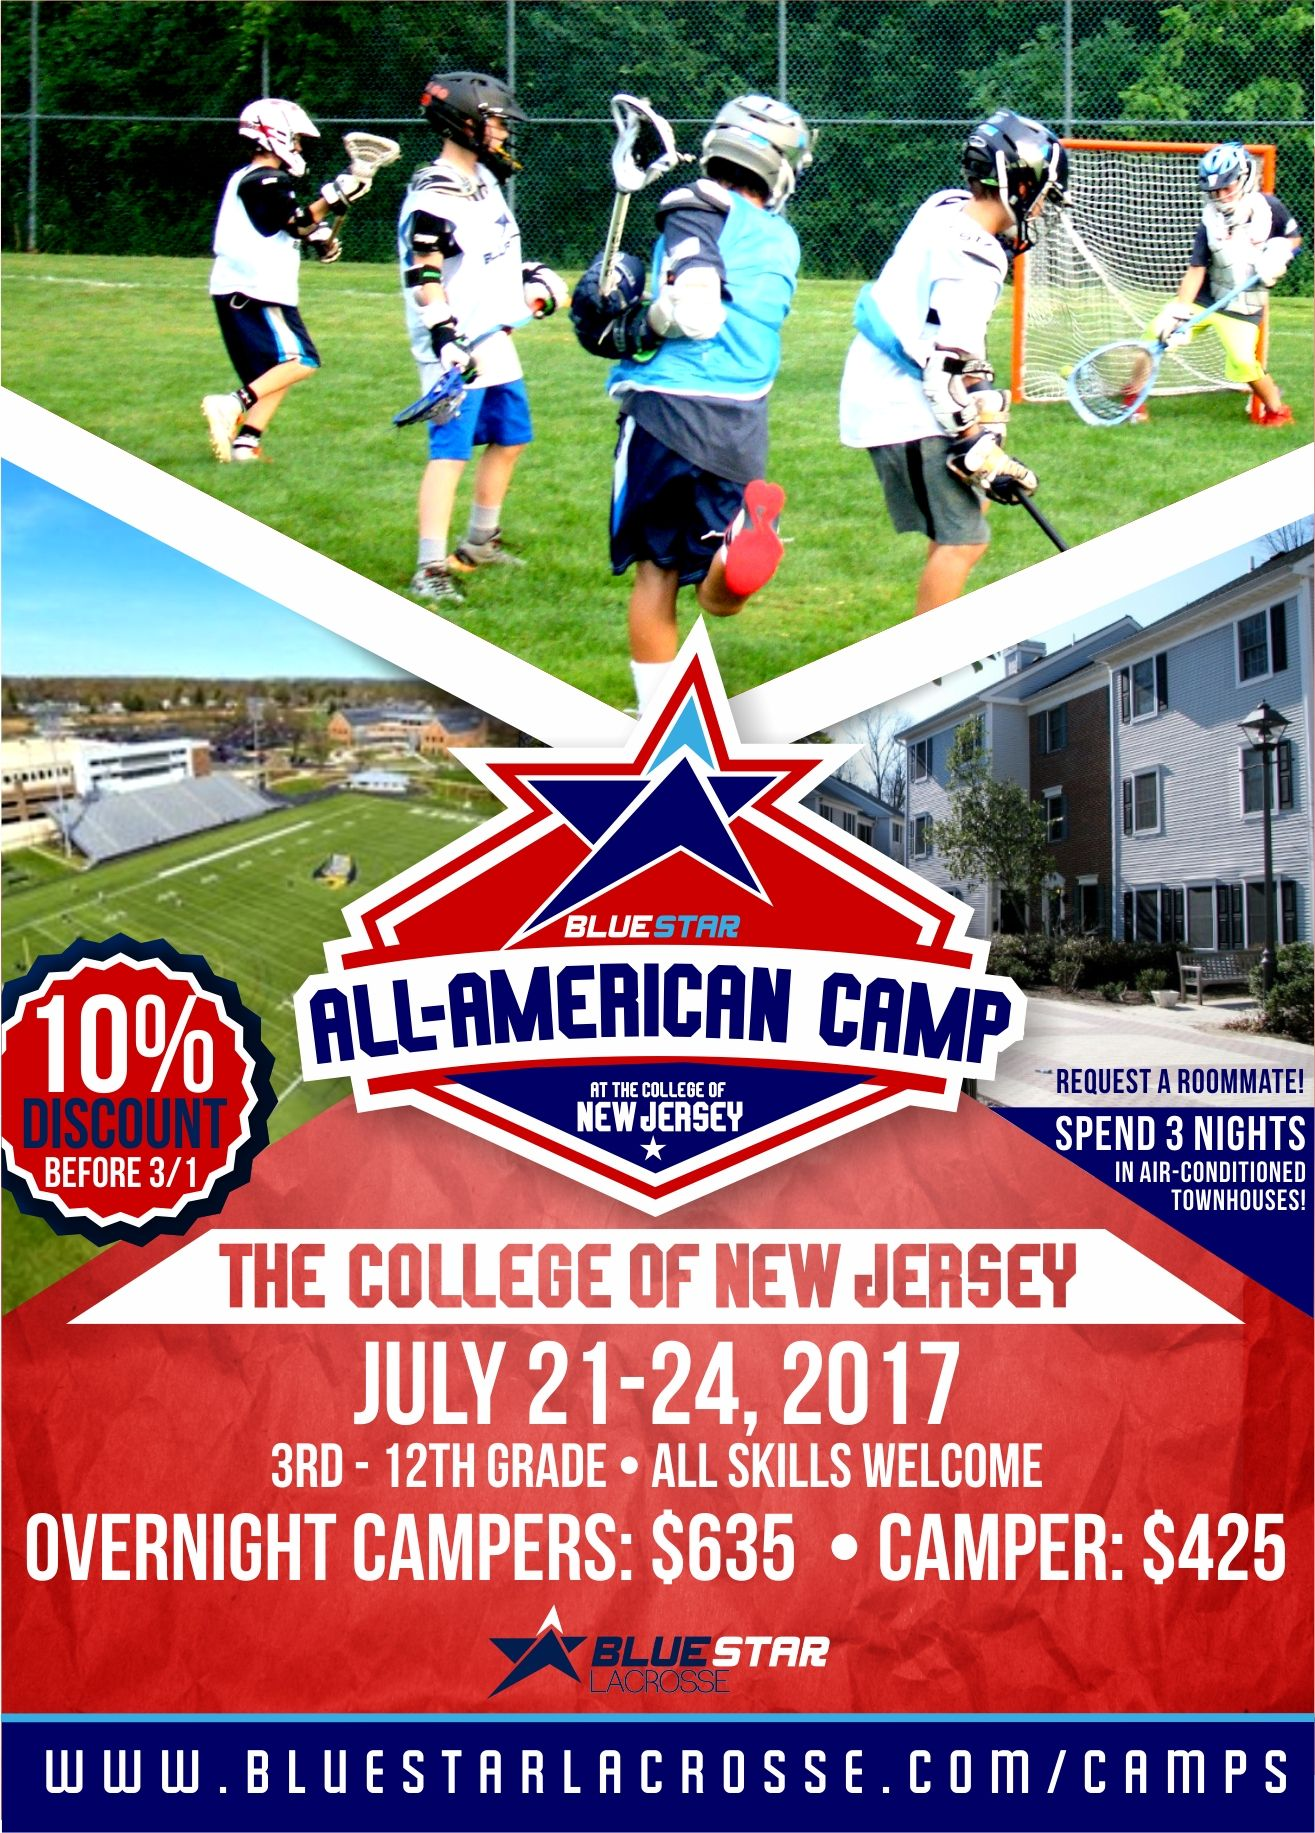 Pin By Blue Star Lacrosse On Camps Lacrosse Camp Camping Lacrosse